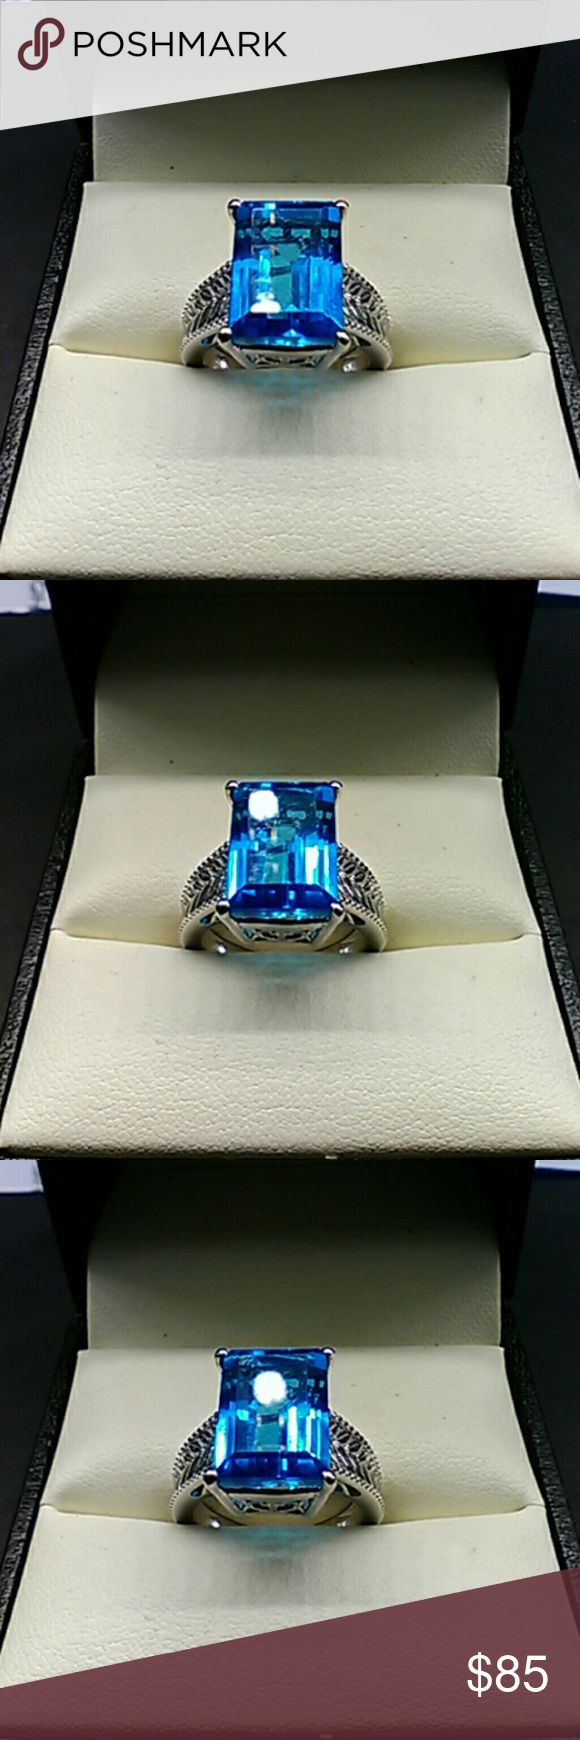 9cts Genuine Caribbean Blue Quartz 925 Silver Retail Price:$389 Flash Sale: $85 Beautiful large sterling silver statement ring. Genuine natural 9 carat Caribbean Blue Quartz.  Platinum over solid 925 sterling silver artisan ring. Size 7 estate 925 Jewelry Rings